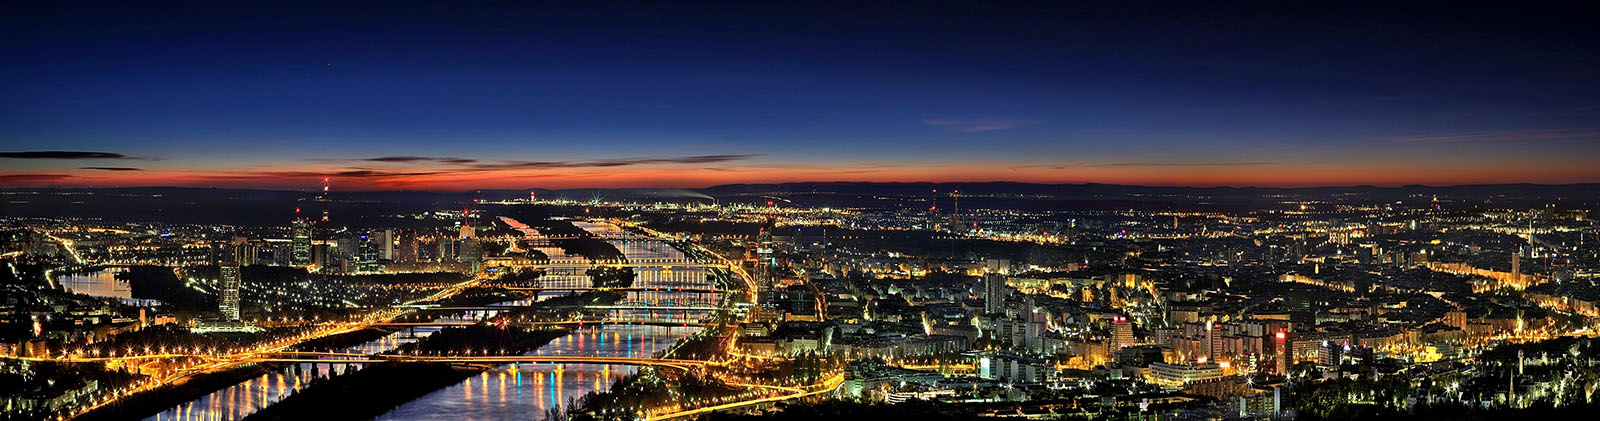 An aerial view of the Danube through Vienna at dusk.